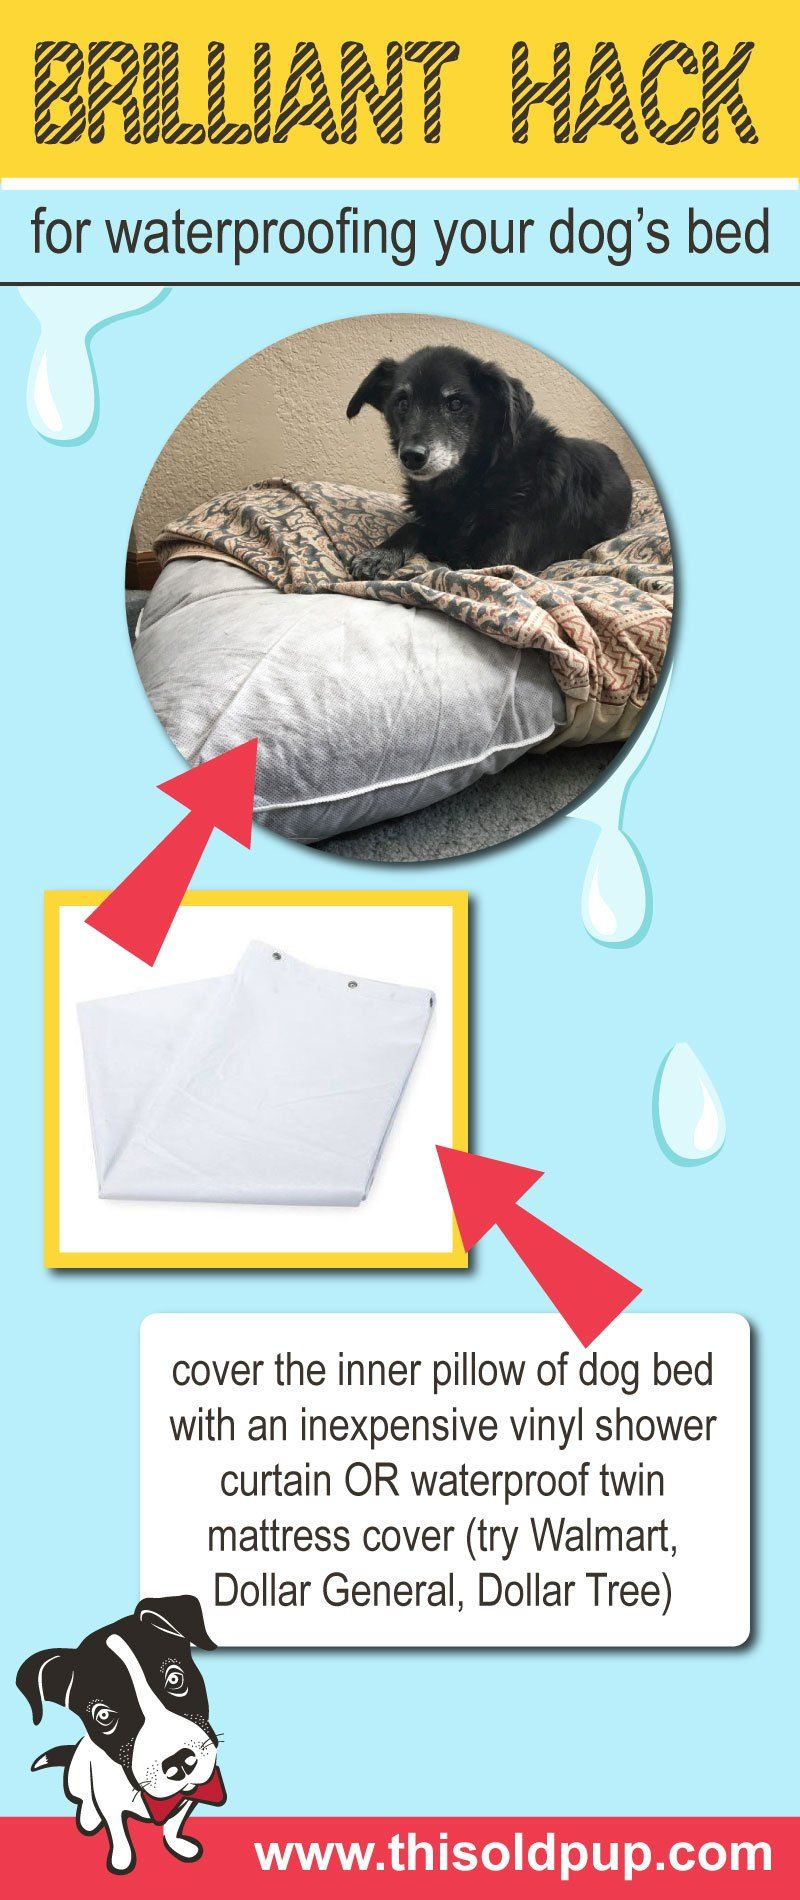 URINARY INCONTINENCE IN DOGS Dog bed, Diy dog bed, Your dog